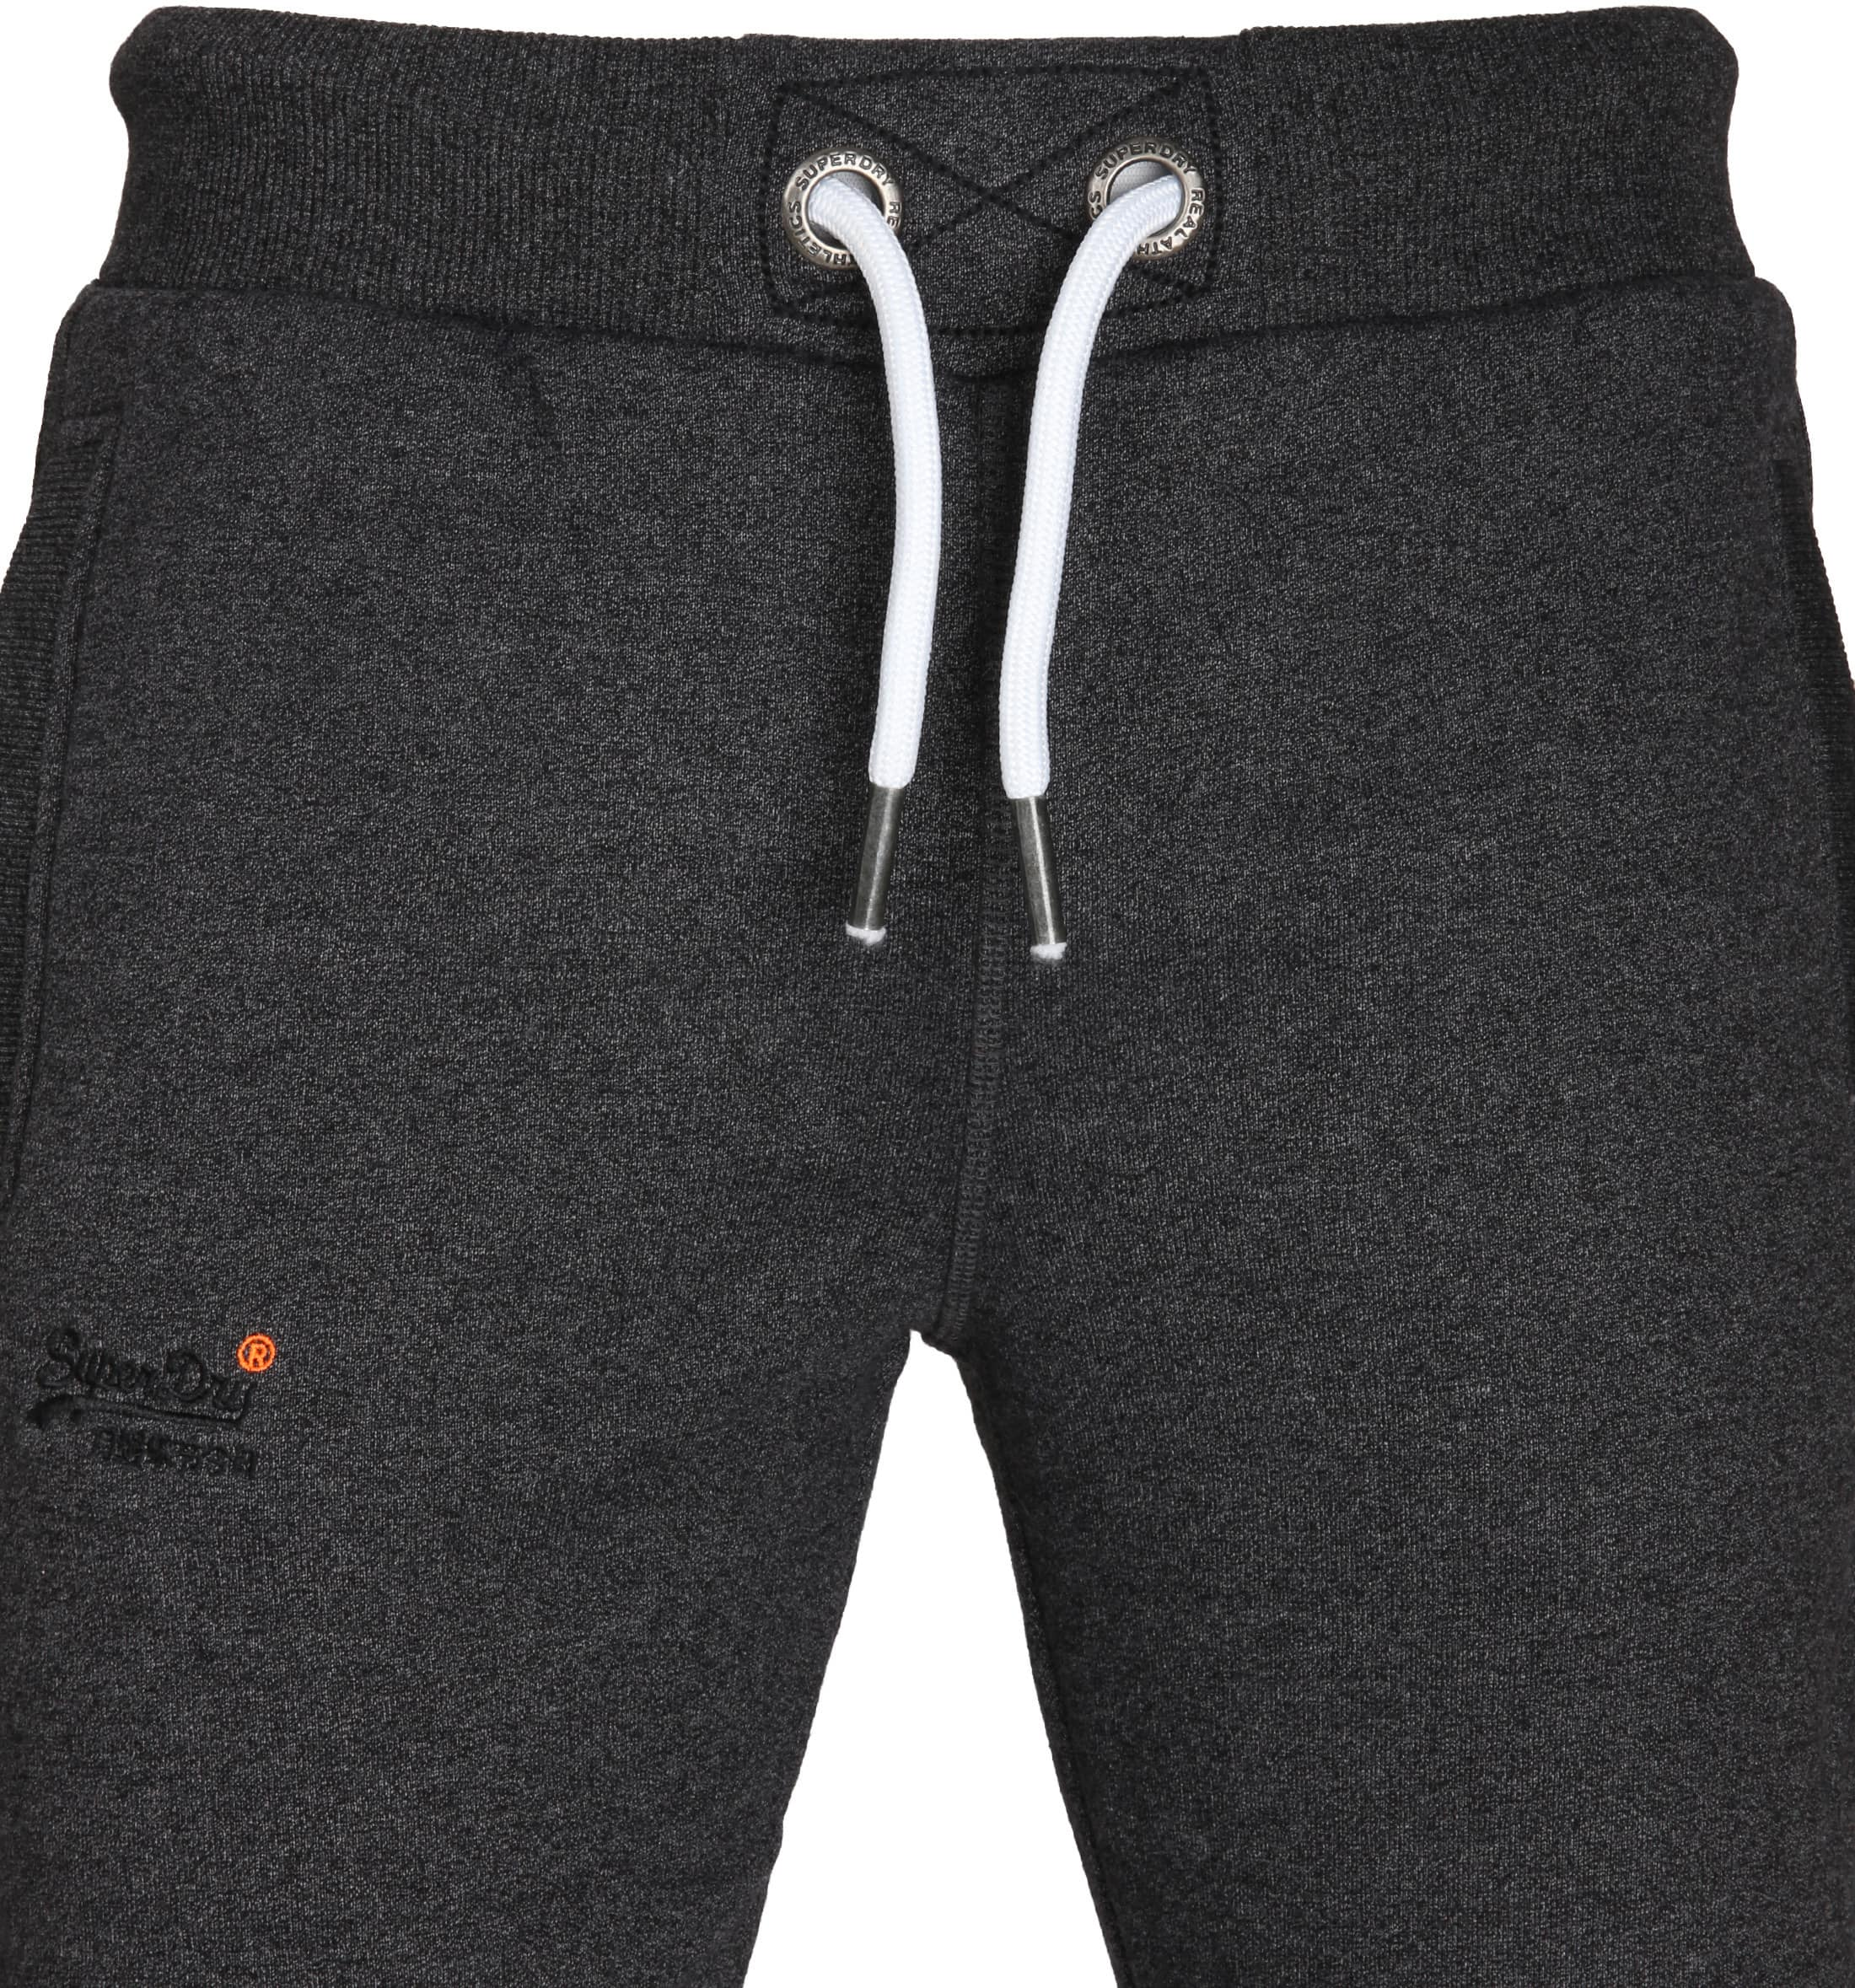 Superdry Sweatpants Zwart foto 2